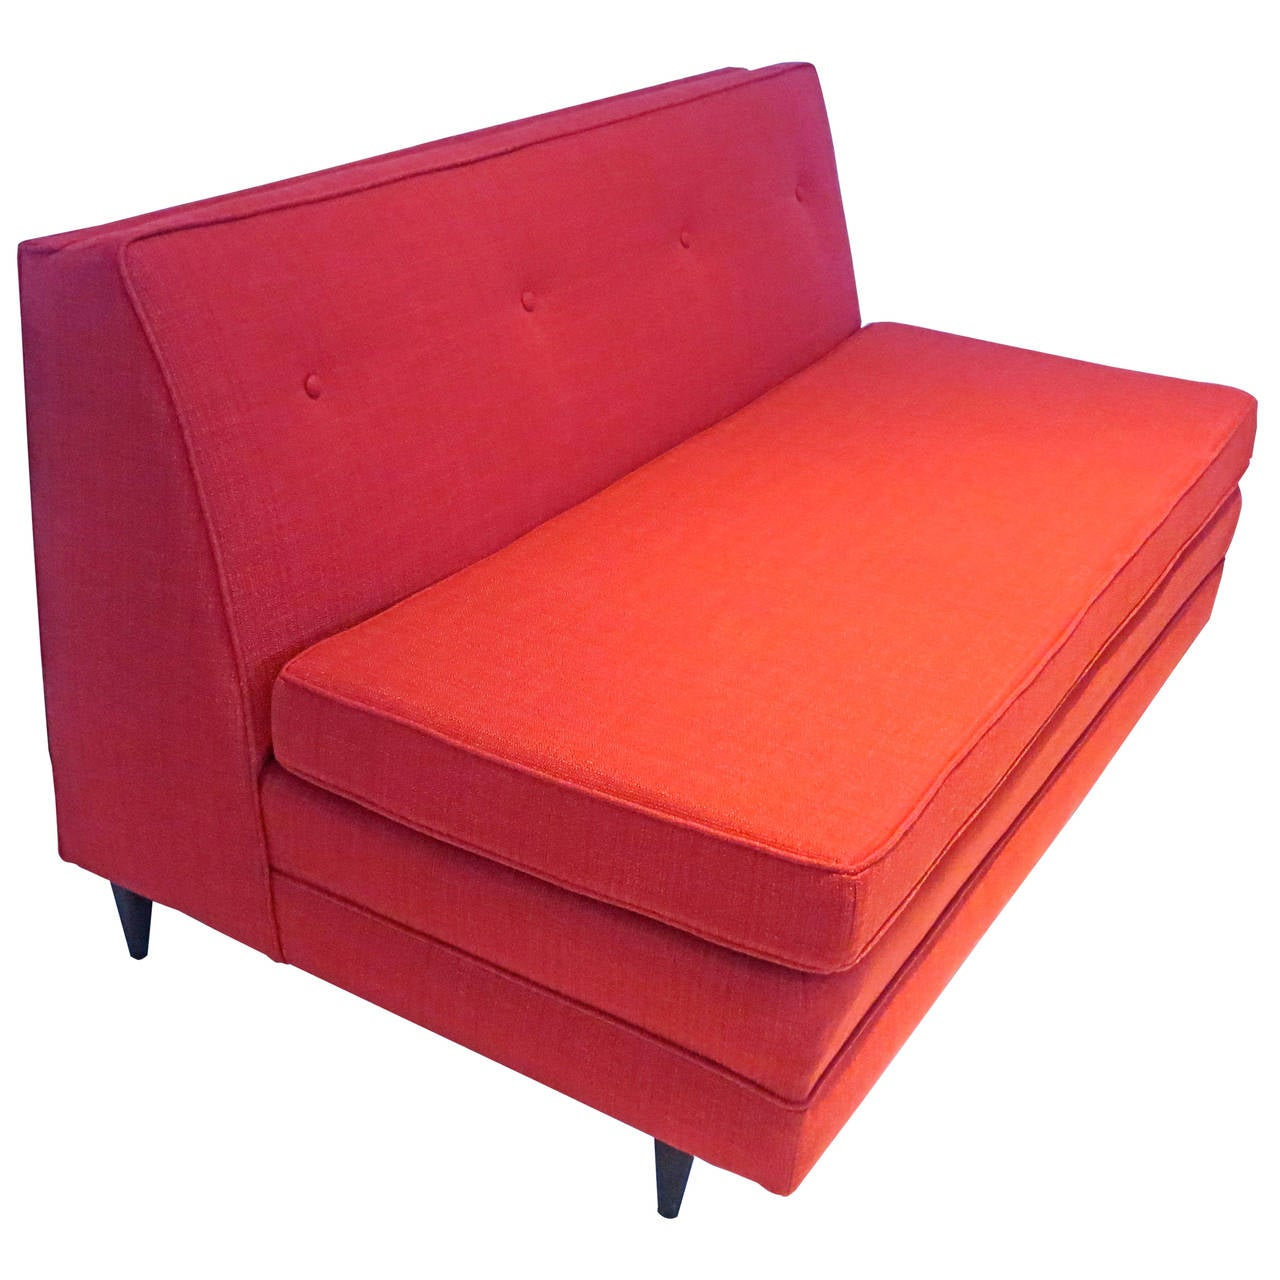 Mid century american modern 1950s slipper loveseat red sofa at 1stdibs Slipper loveseat